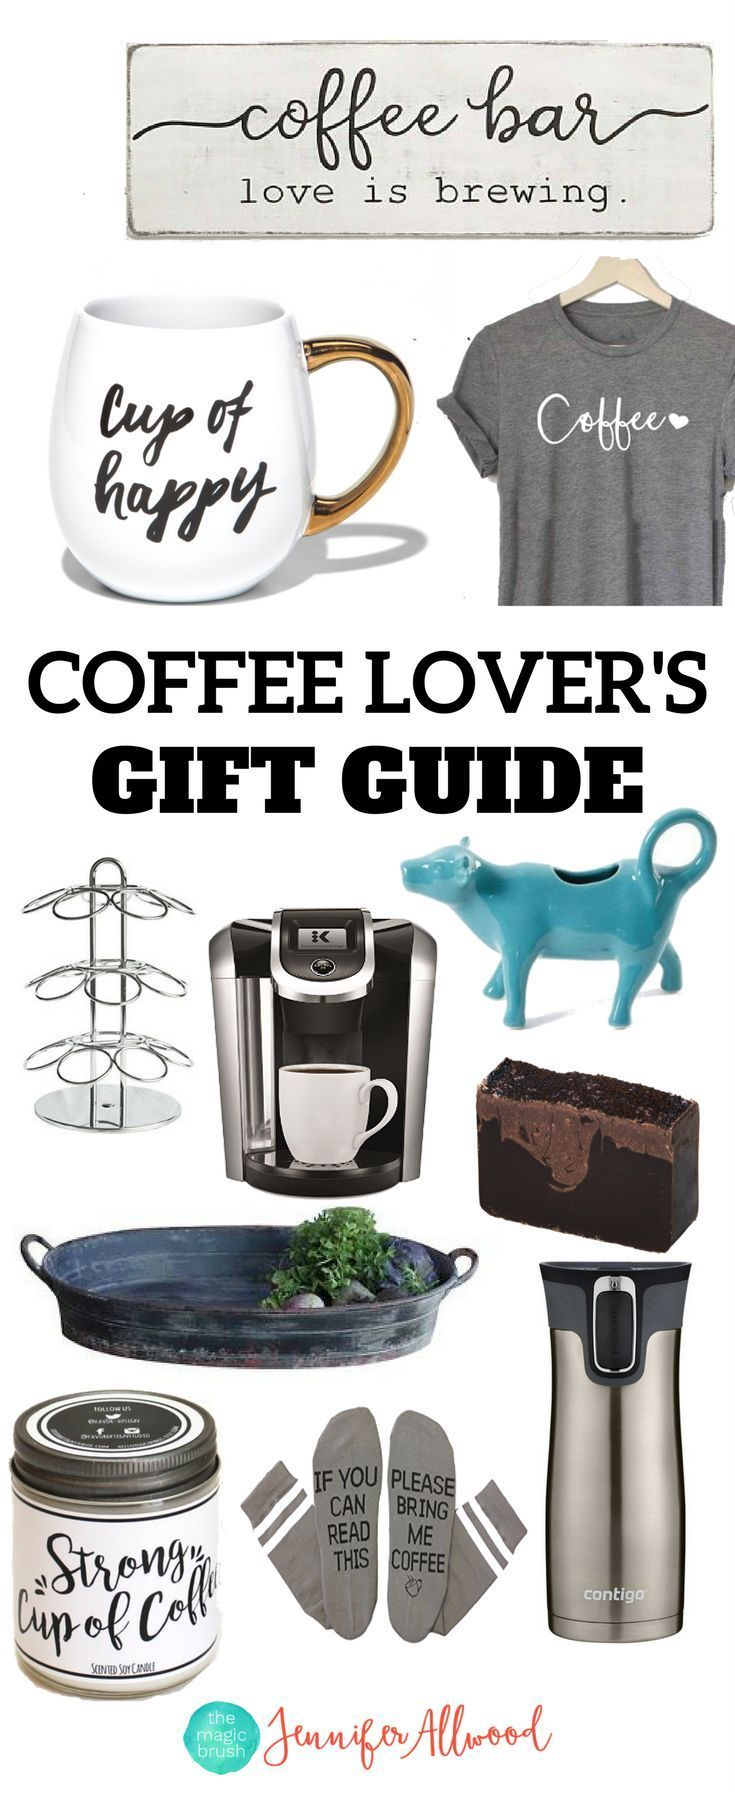 A Gift Guide for Coffee Lover's